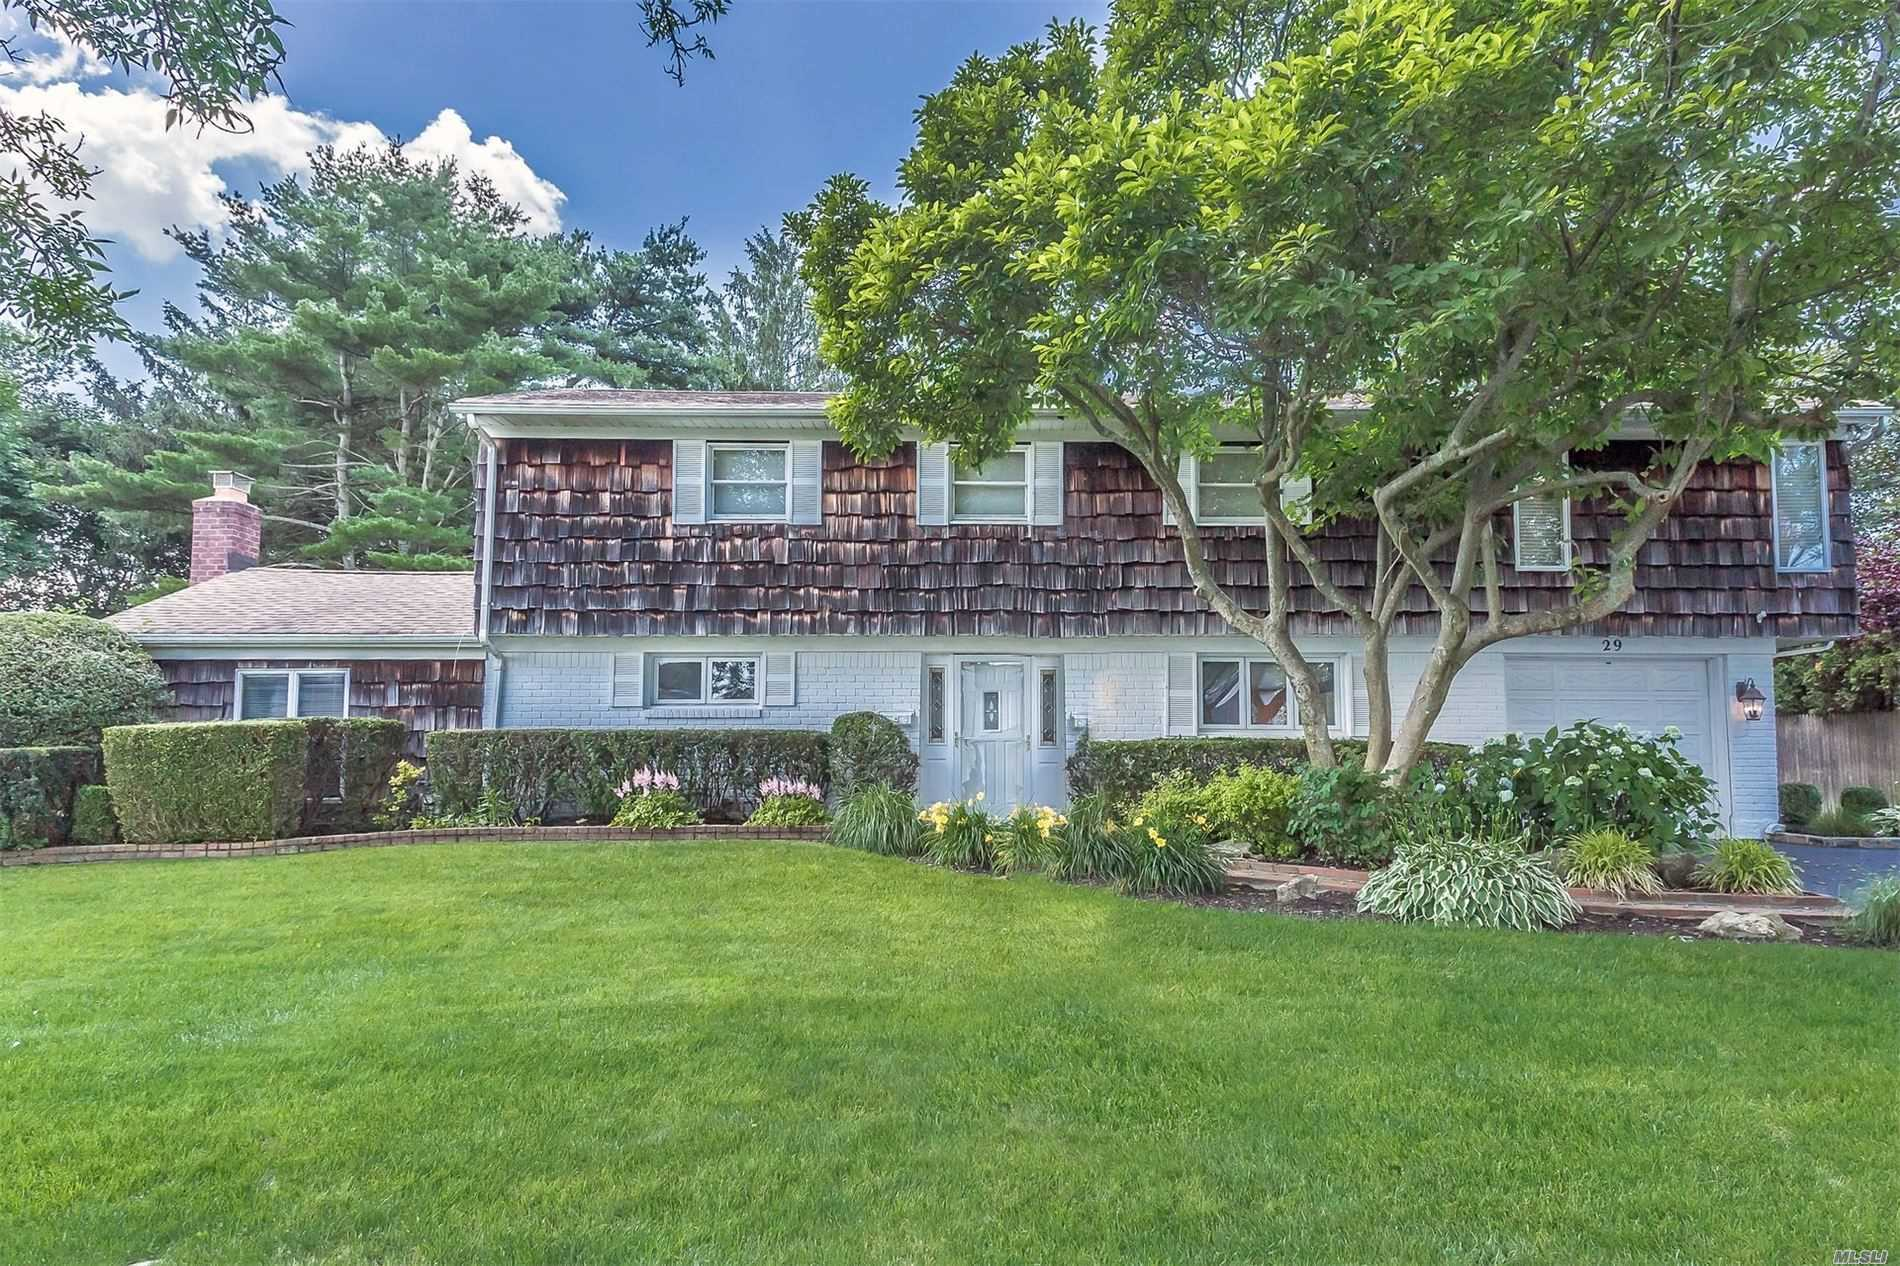 29 E Park Dr - Old Bethpage, New York